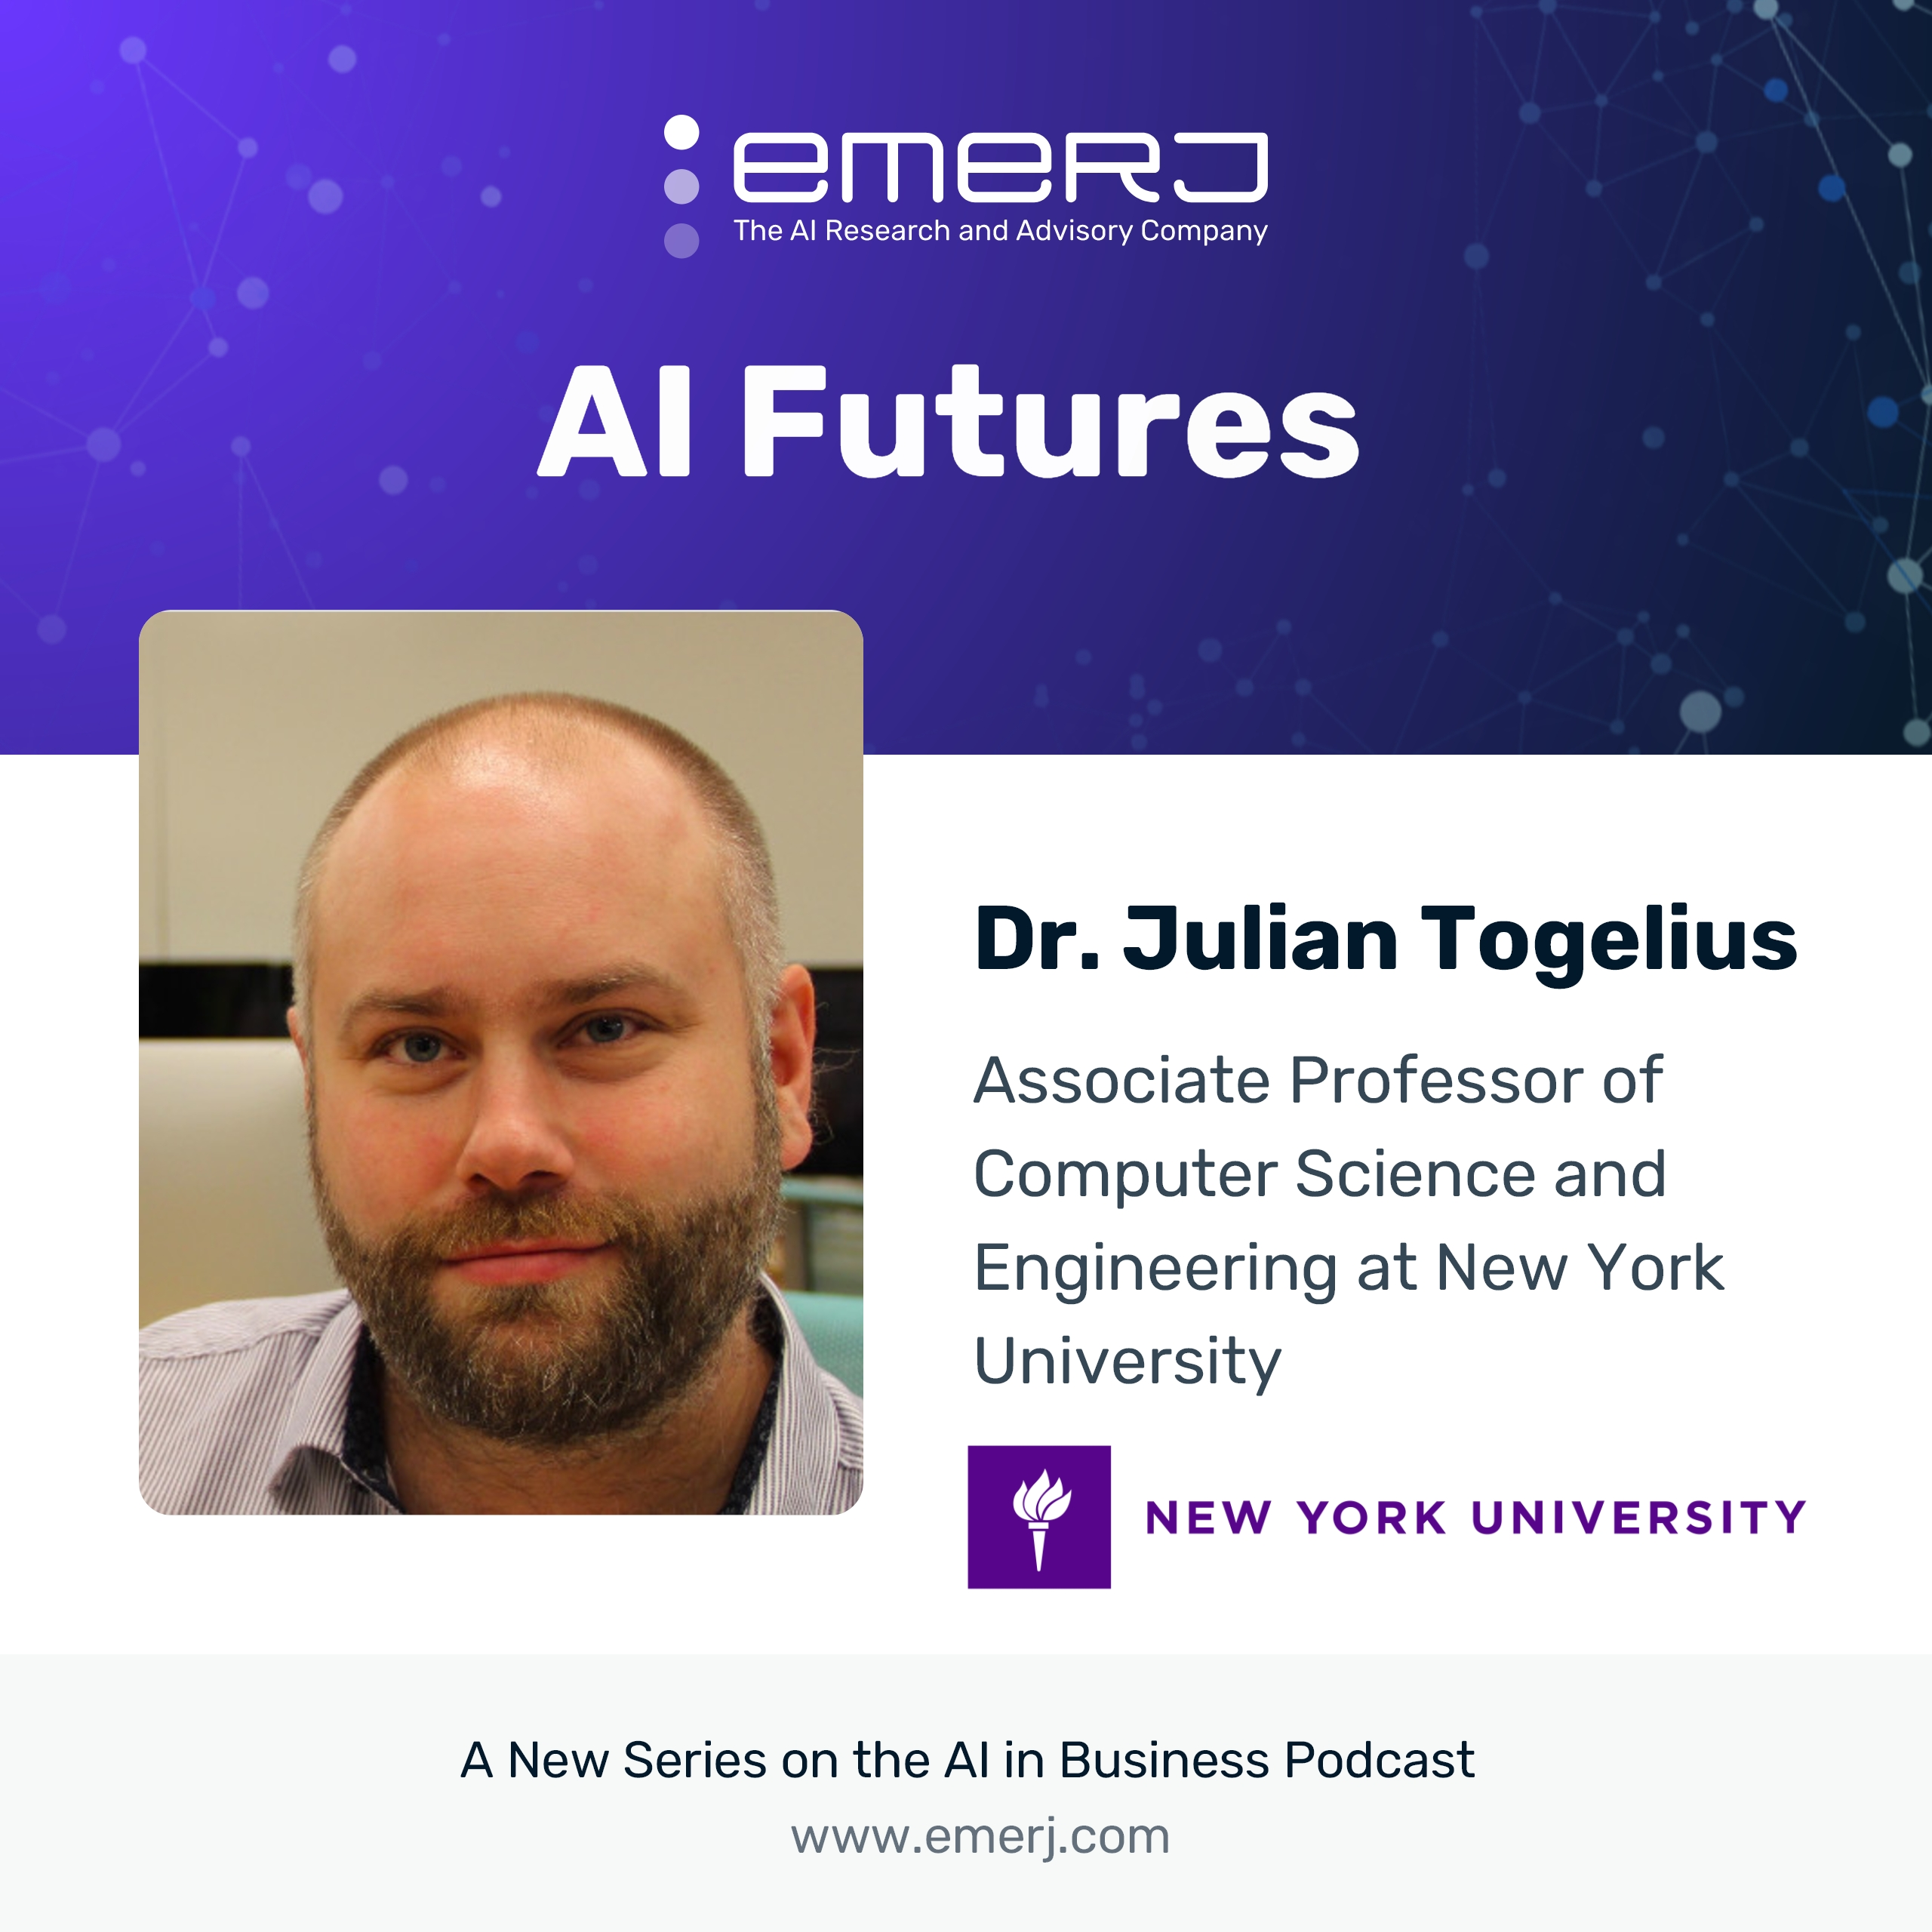 [AI Futures - S2E4] The Impact of Gaming and VR on the Future of AI - with Dr. Julian Togelius